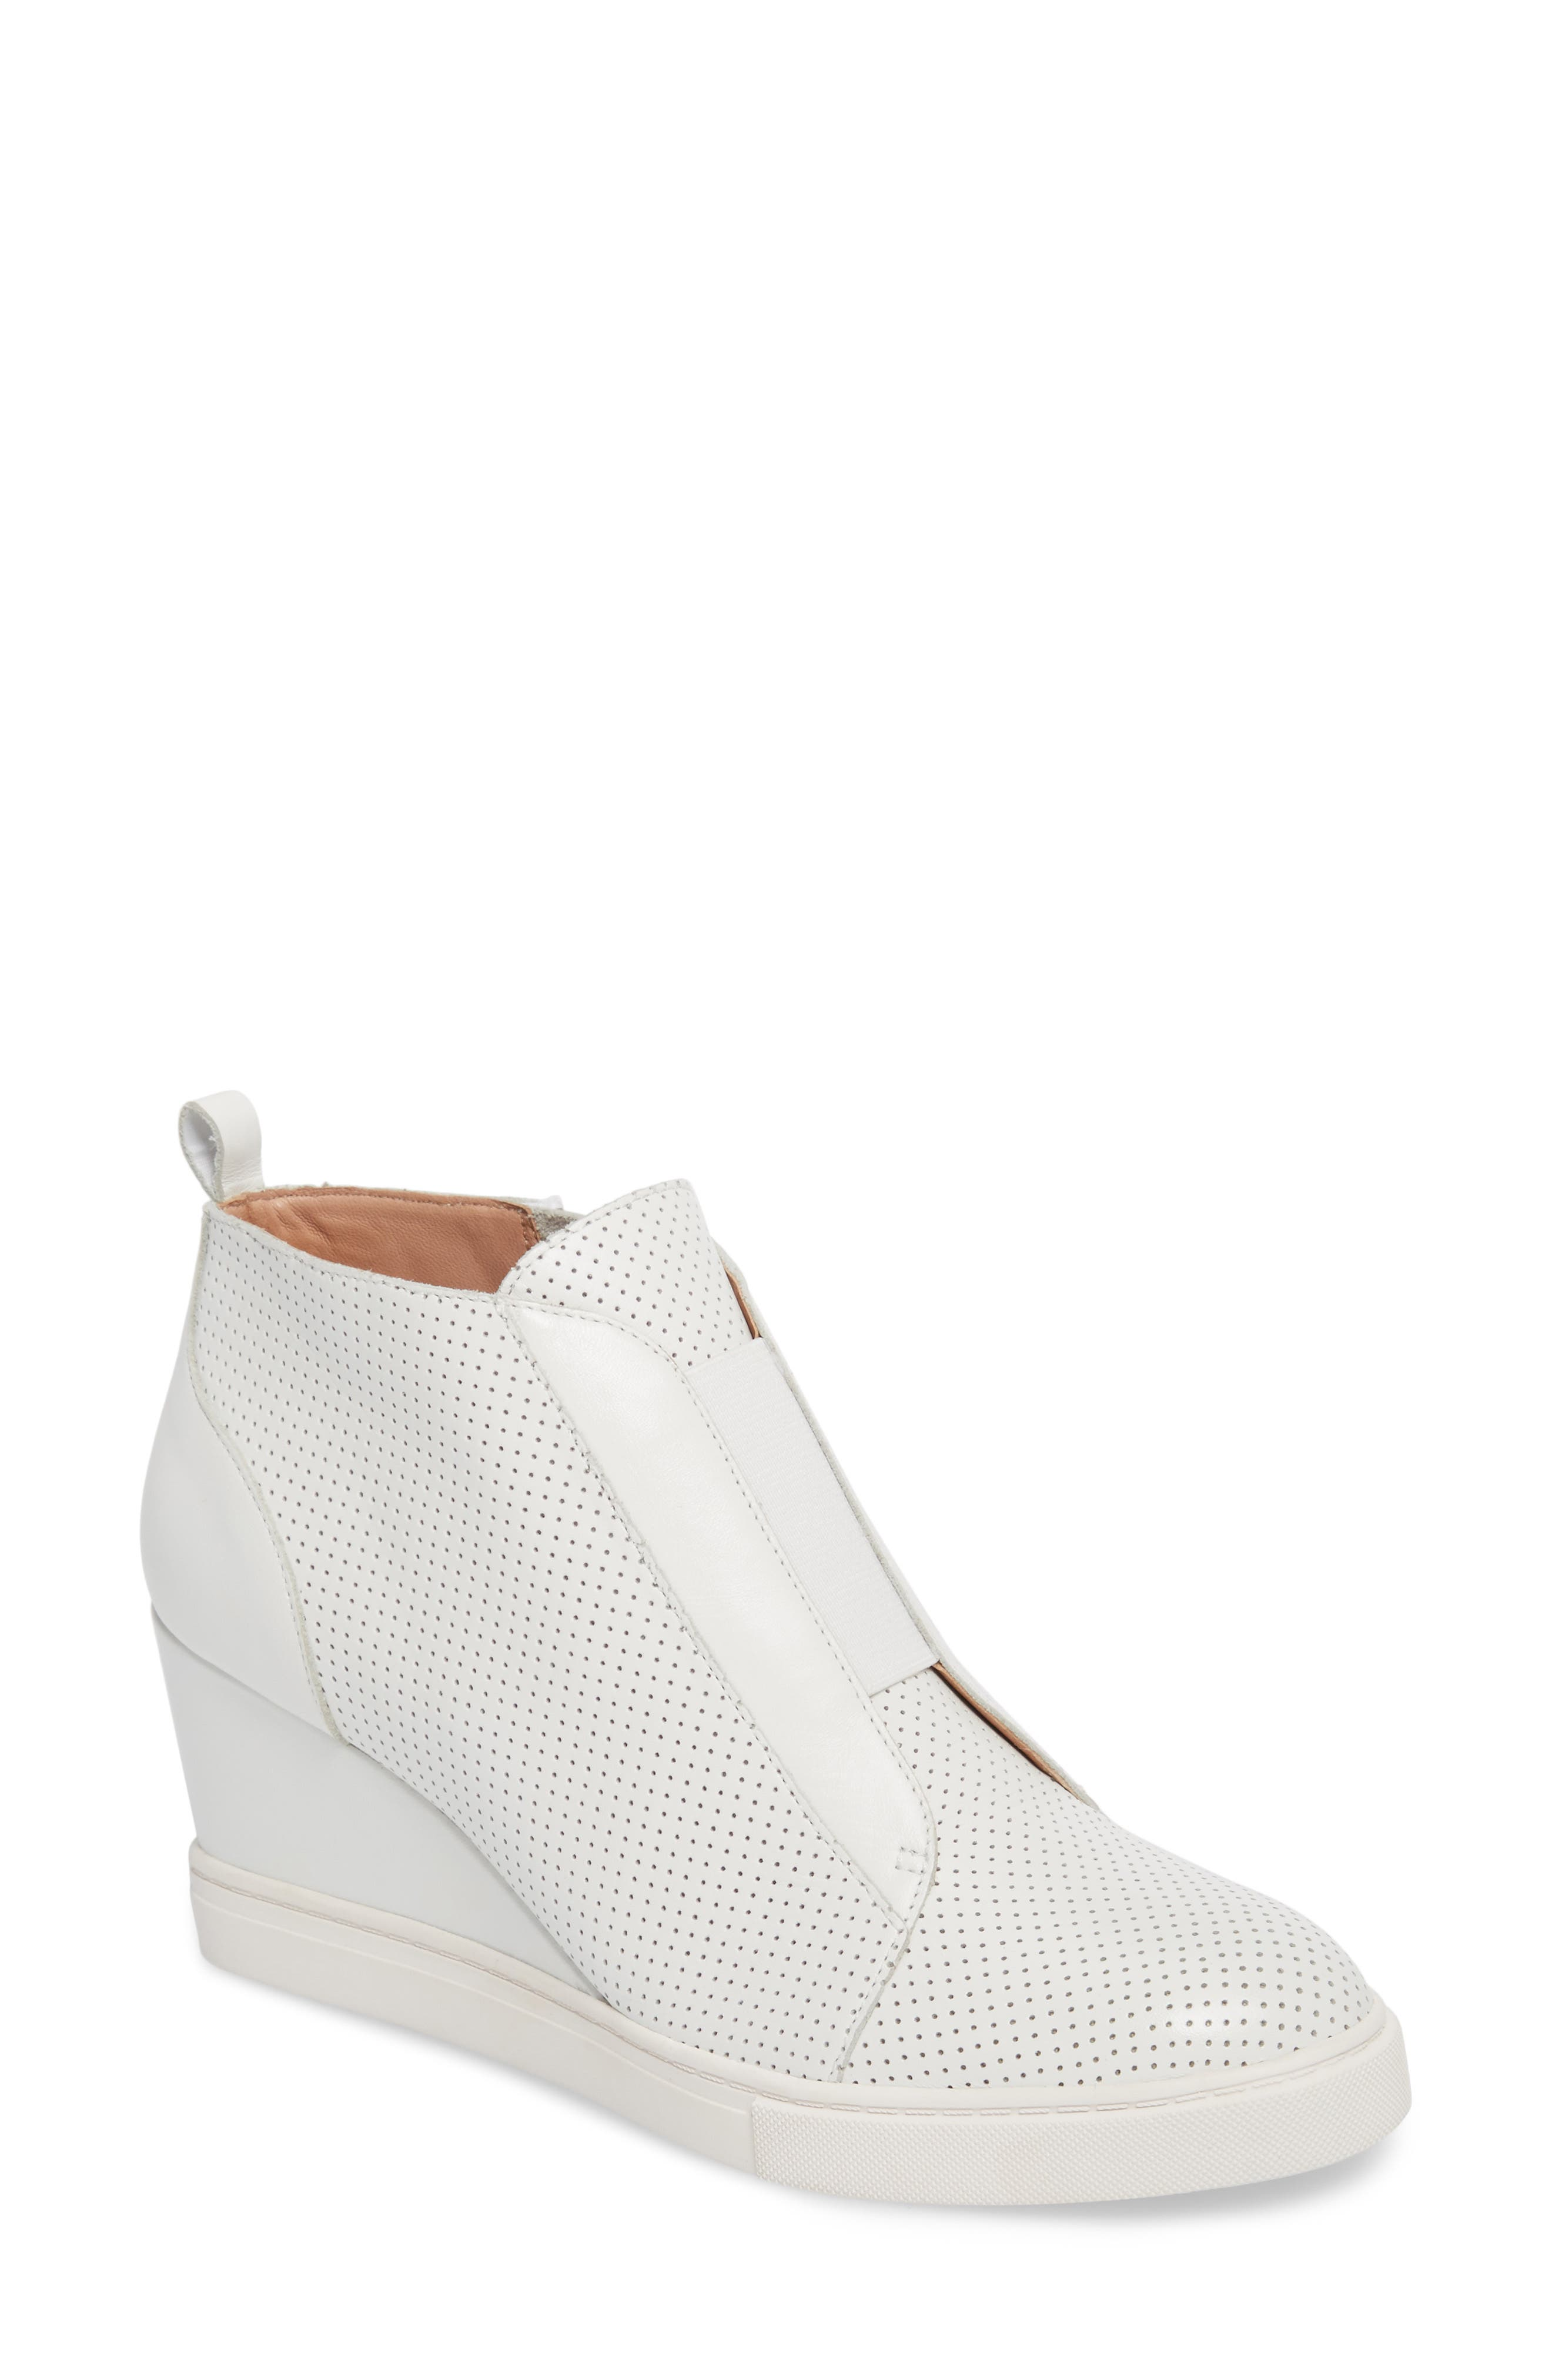 Alternate Image 1 Selected - Linea Paolo 'Felicia' Wedge Bootie (Women)